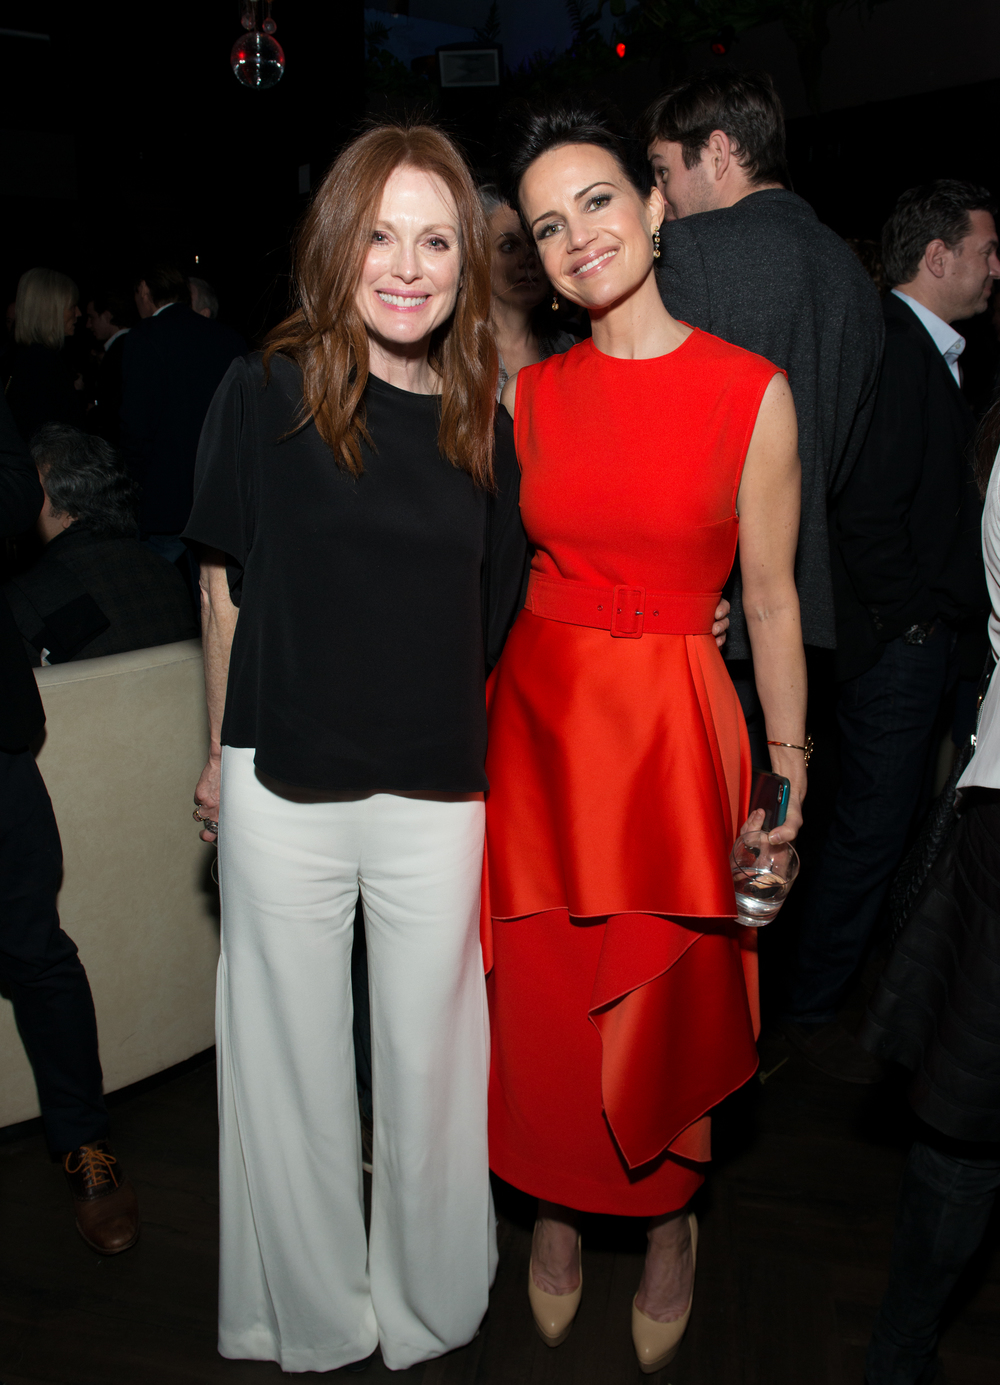 Julianne Moore, and Carla Gugino                                                                                                                                                        Photo: Noam Galai